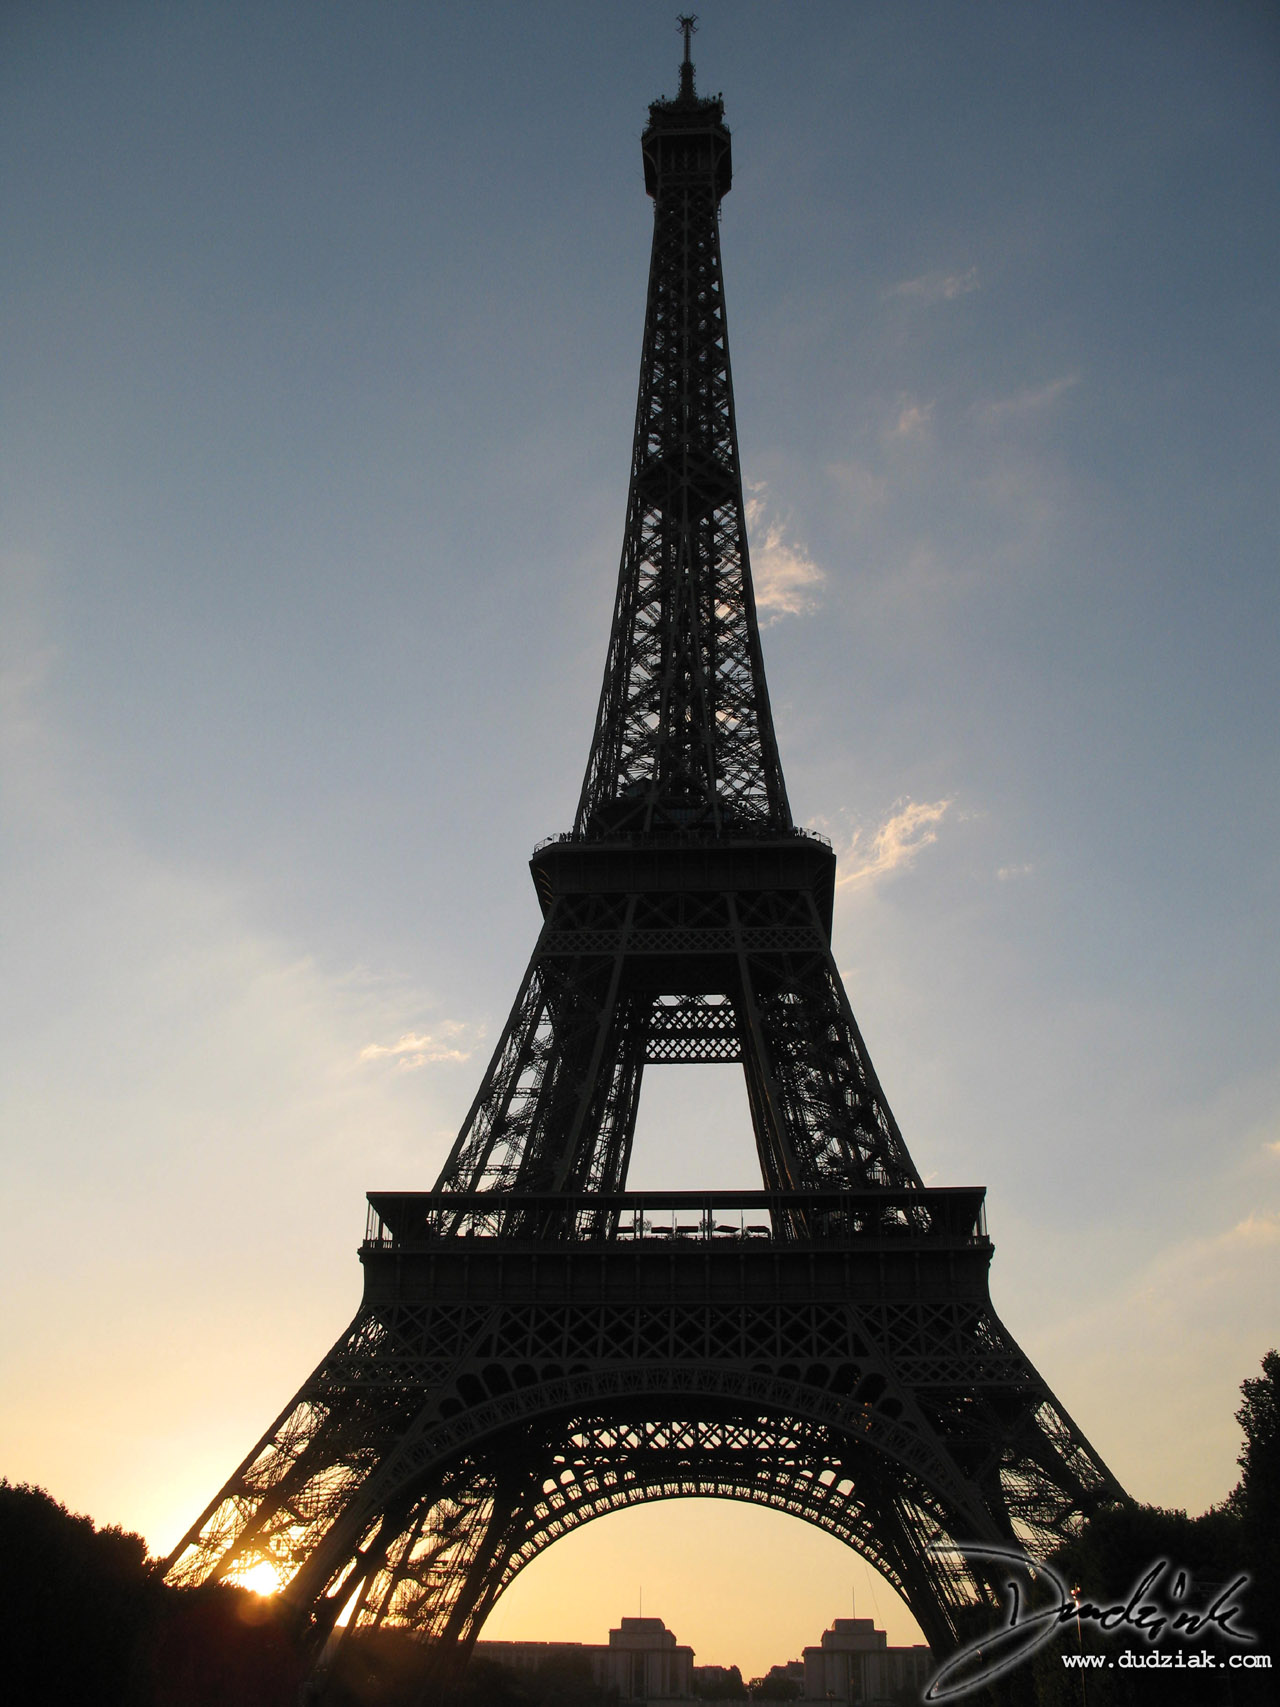 Picture of the Eiffel Tower in Paris at sunset.  Picture taken from the Champ de Mars on Bastille Day.